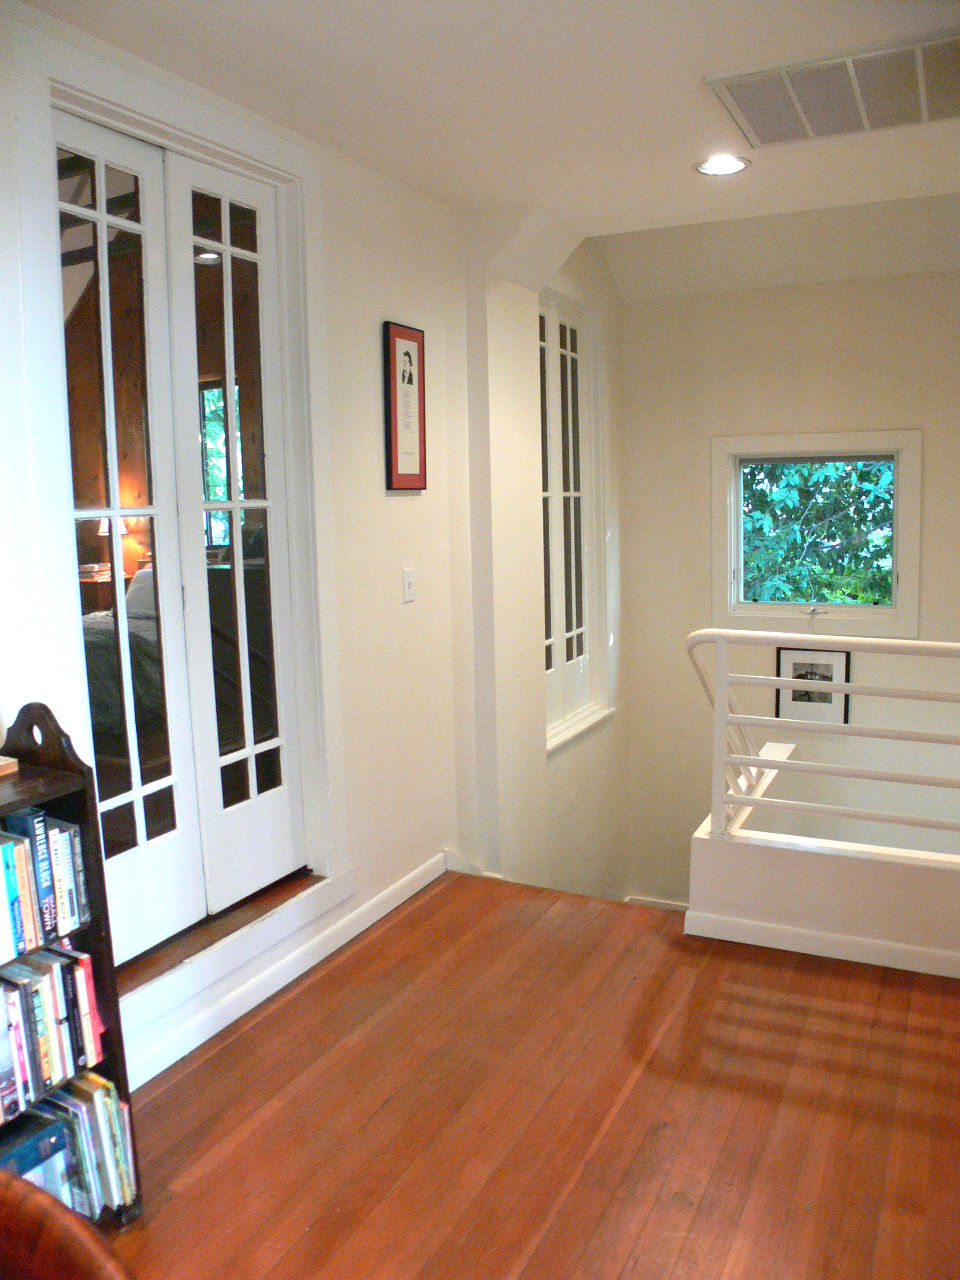 Landing at the top of the stairs to three bedrooms.